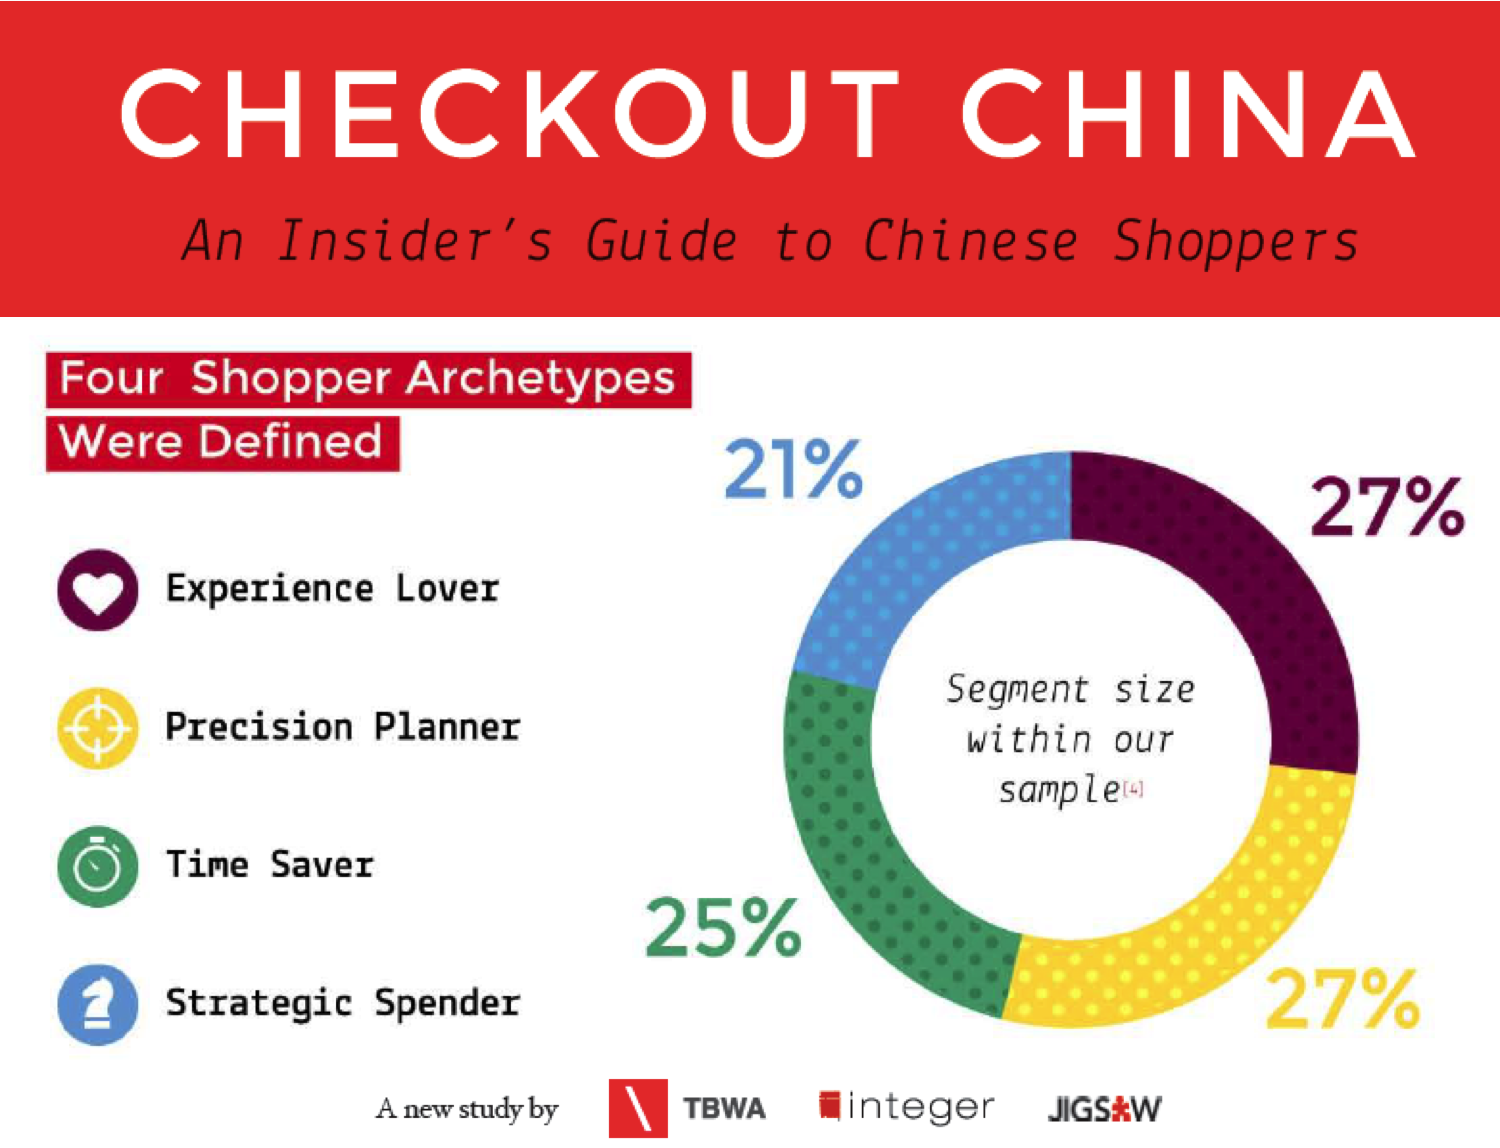 New Study: Checkout China–Uncovering Complexities of Shoppers in China